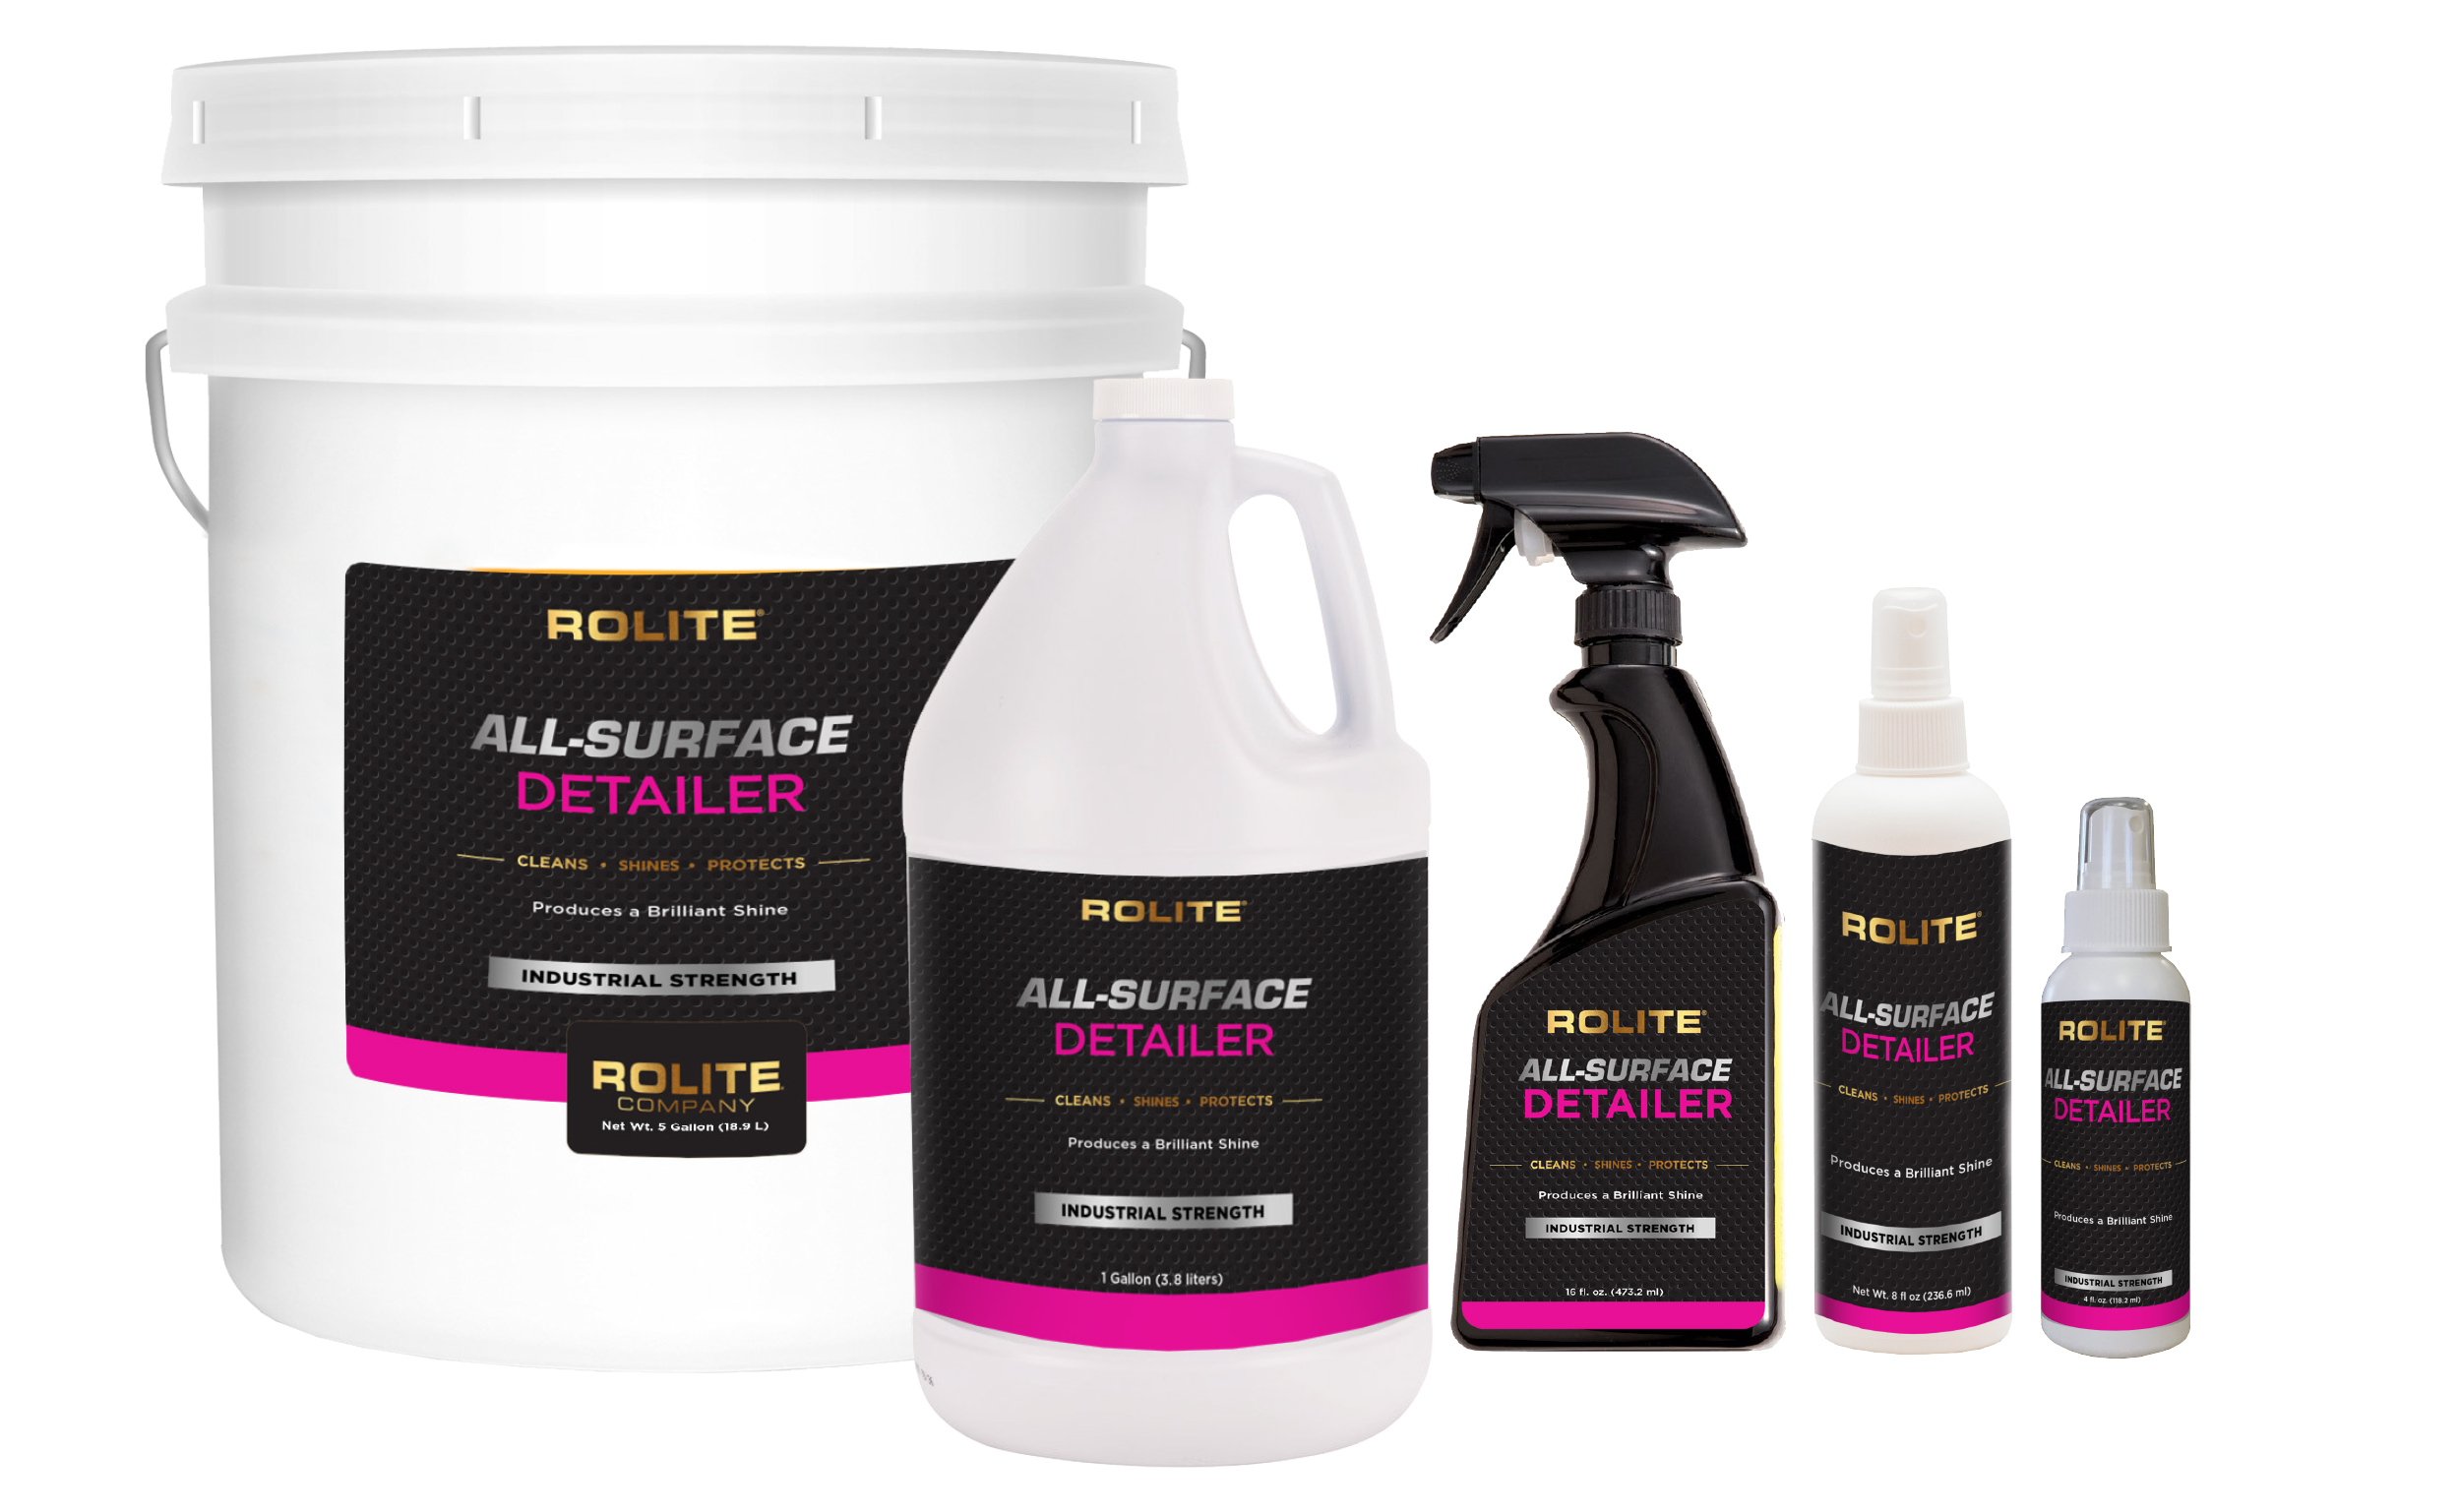 Rolite All-Surface Detailer